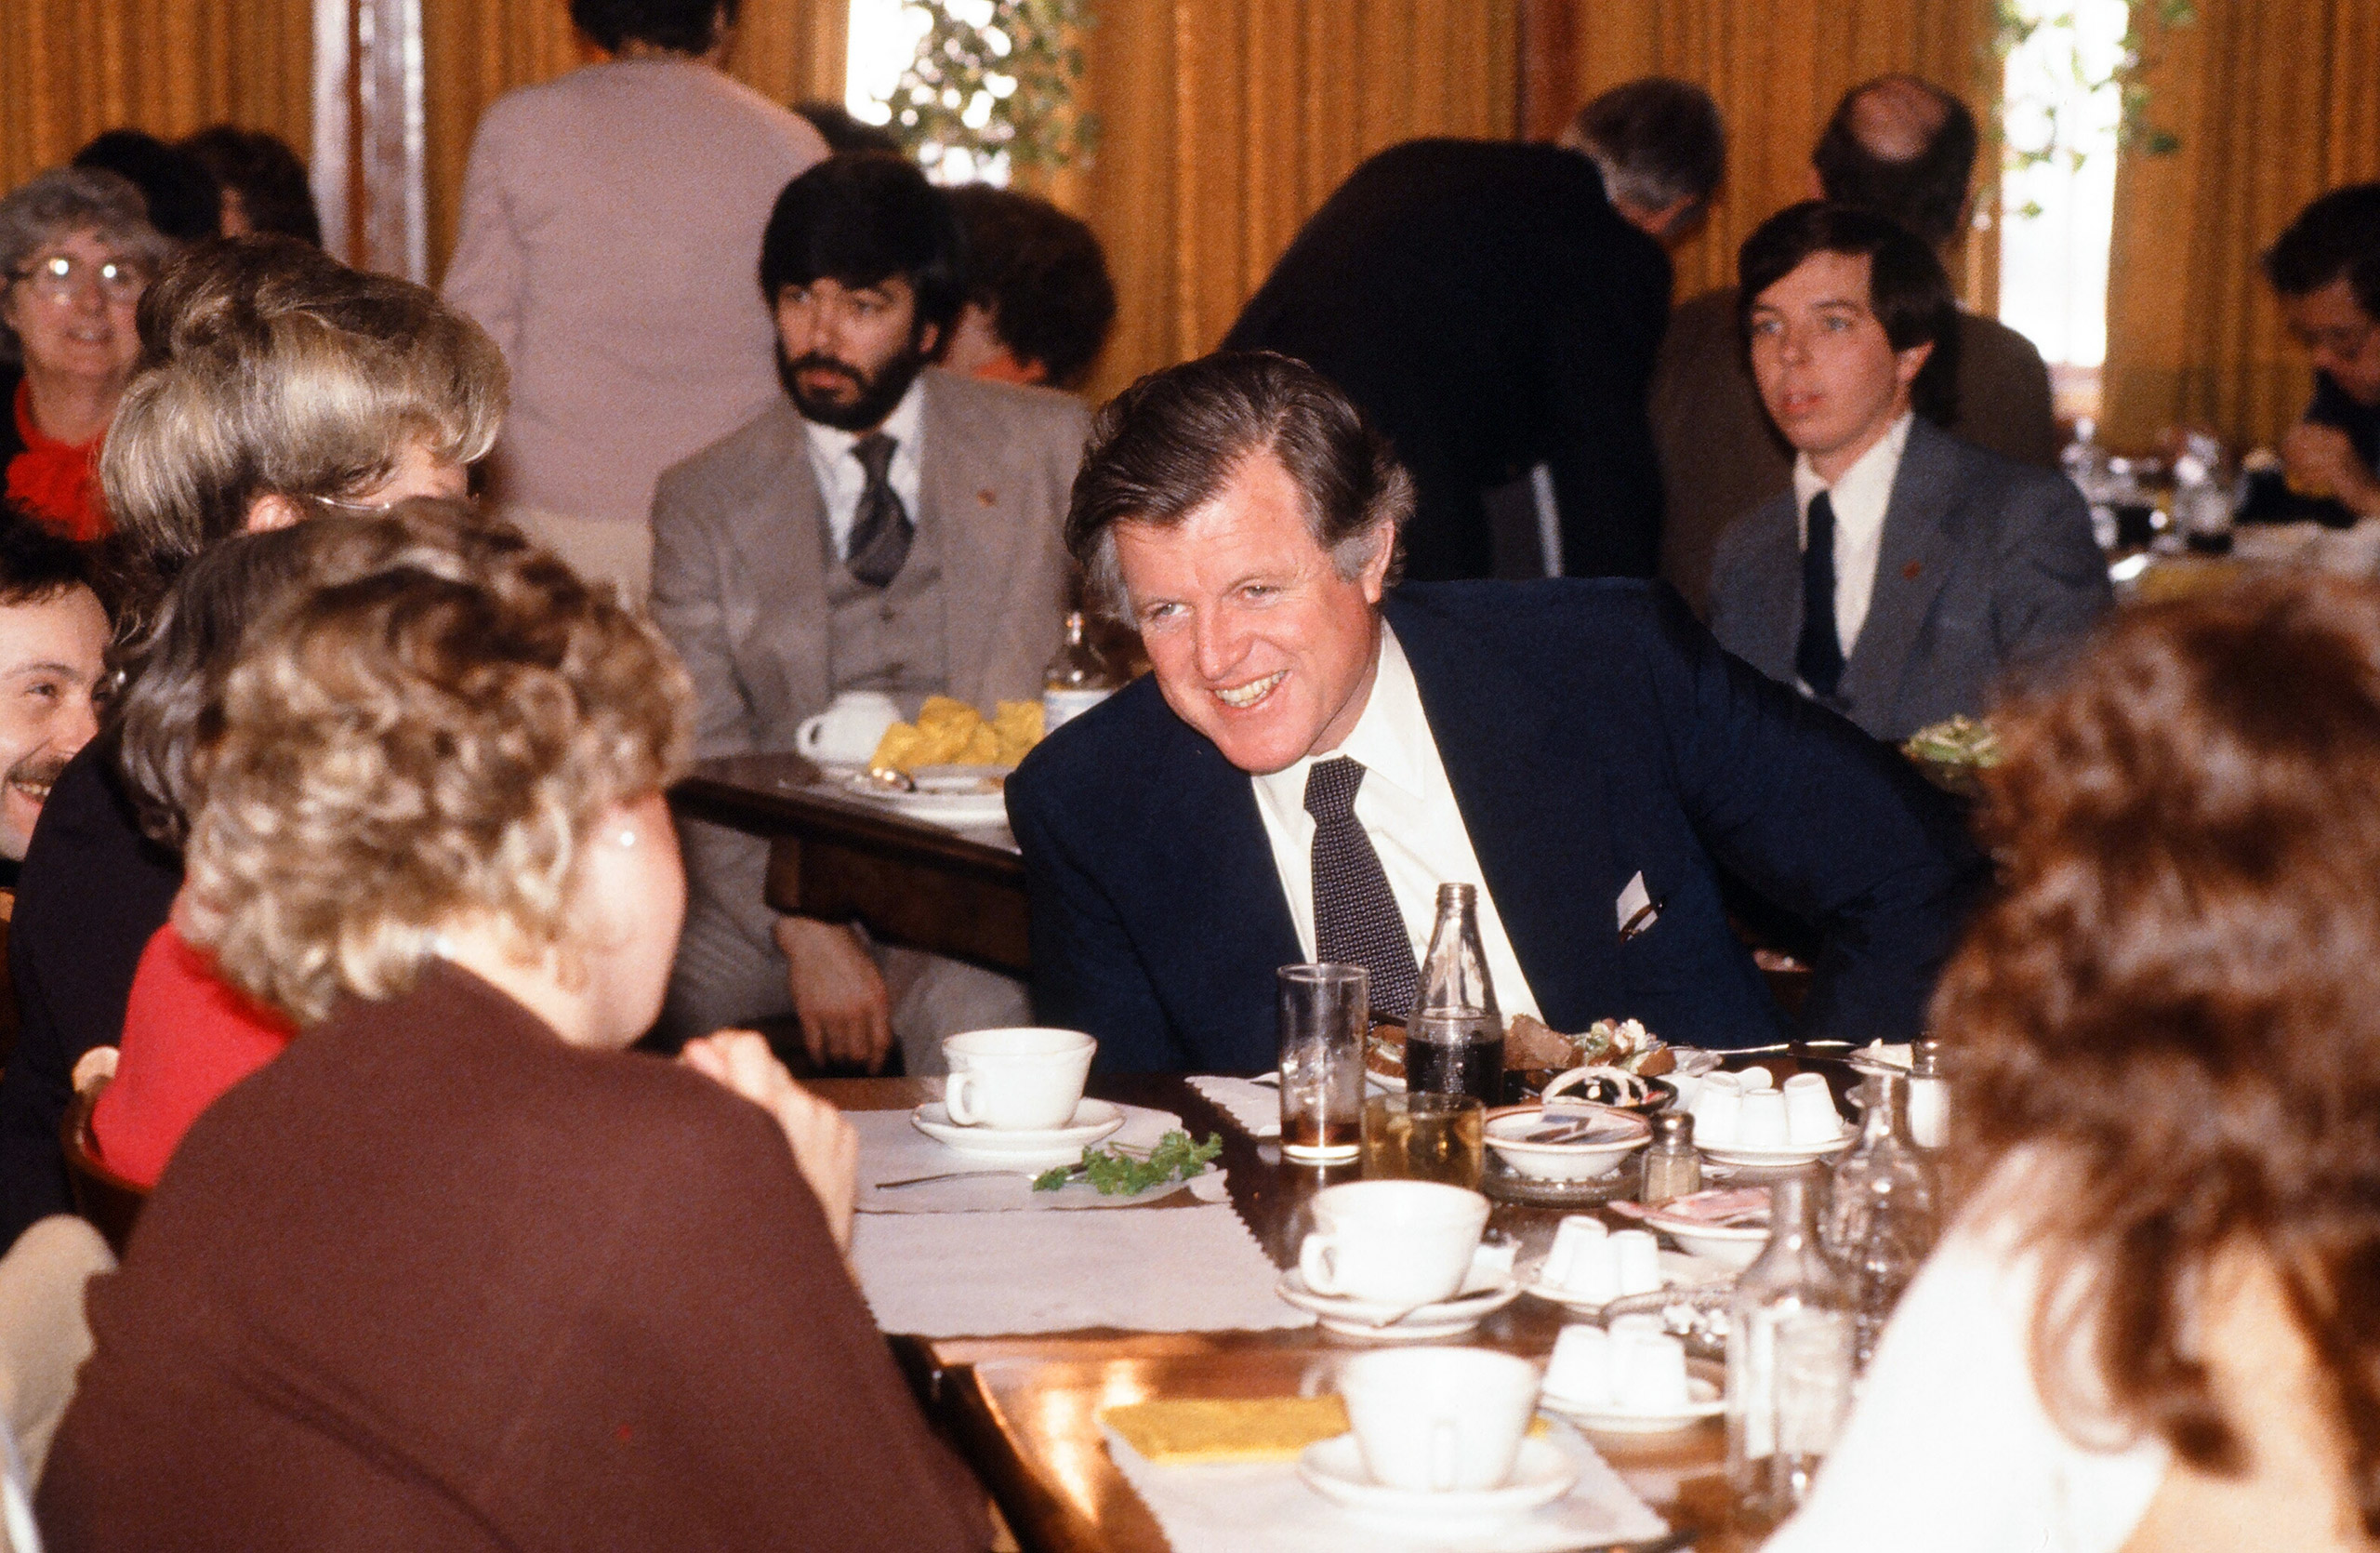 Senator Ted Kennedy laughs as he shares a meal with unidentified supporters at a restaurant during his campaign tour for the Democratic nomination for president, 1980.